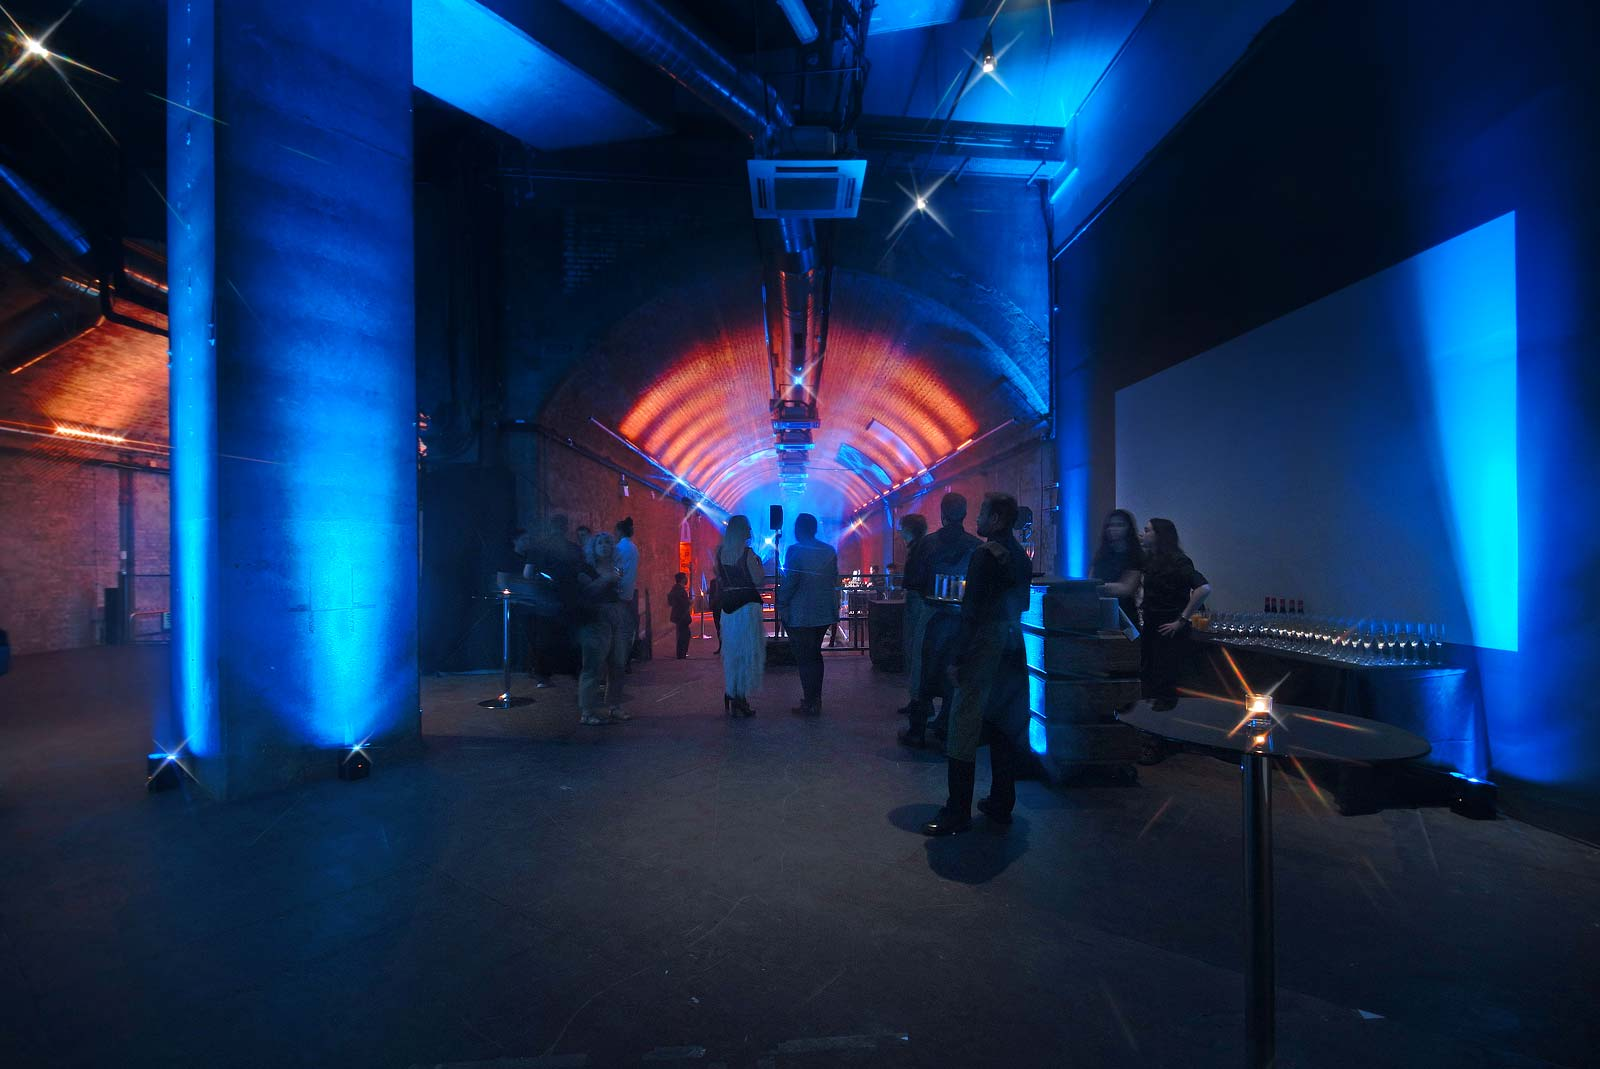 London South Bank Event Venue represented by Venues LDN with mood lighting